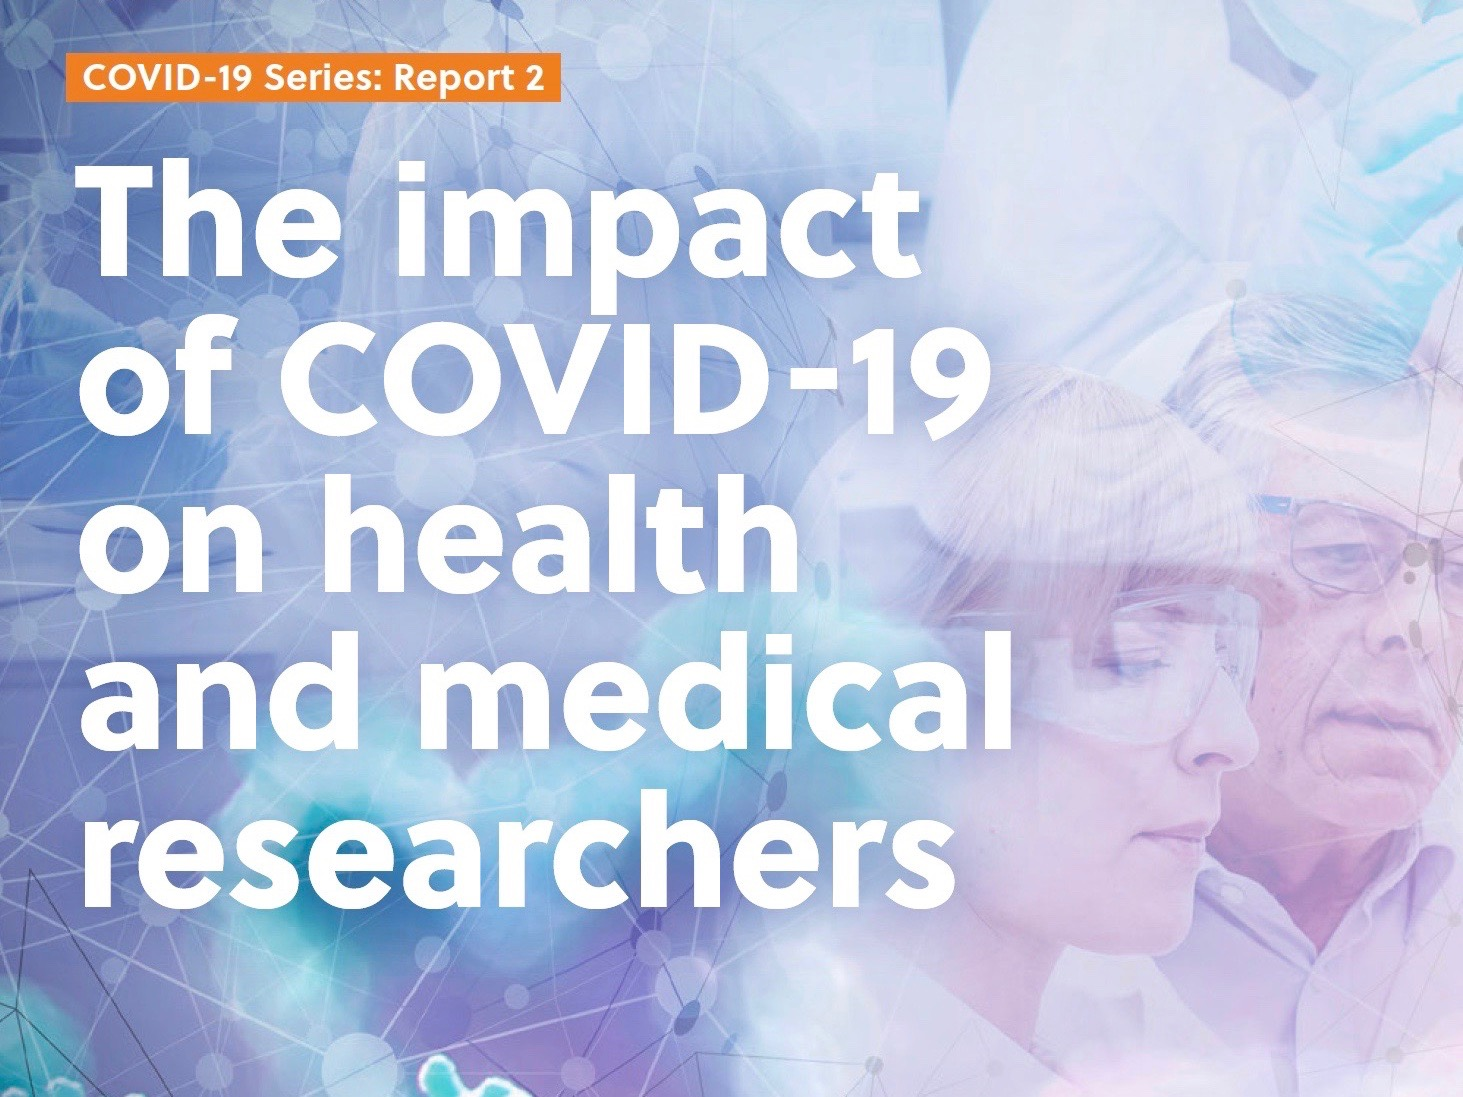 MEDIA RELEASE – Impact of COVID-19 on health and medical researchers